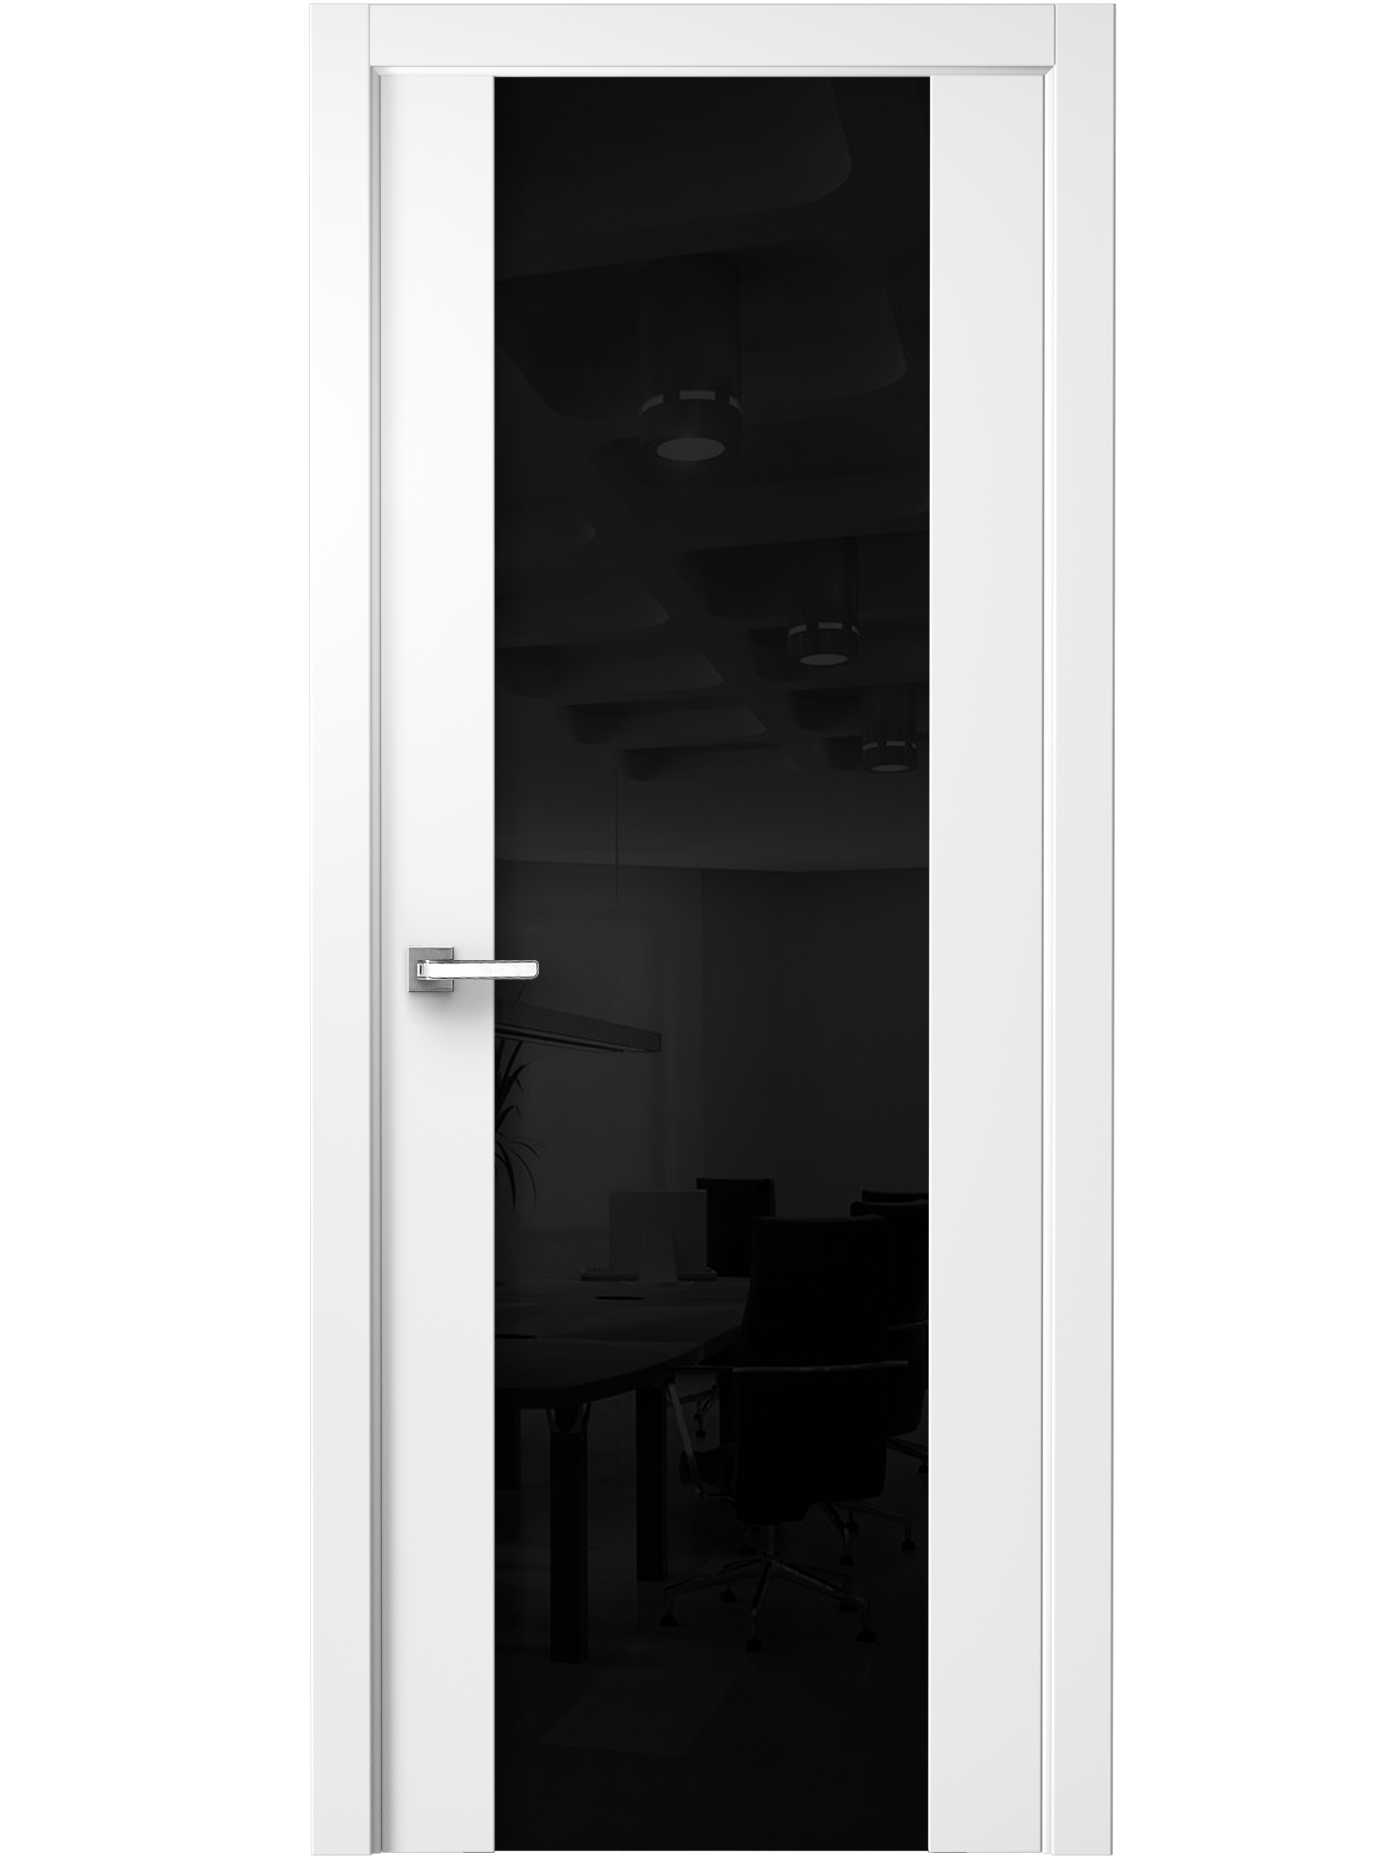 Image Vento Interior Door Polar White/ Black Triplex Glass 0